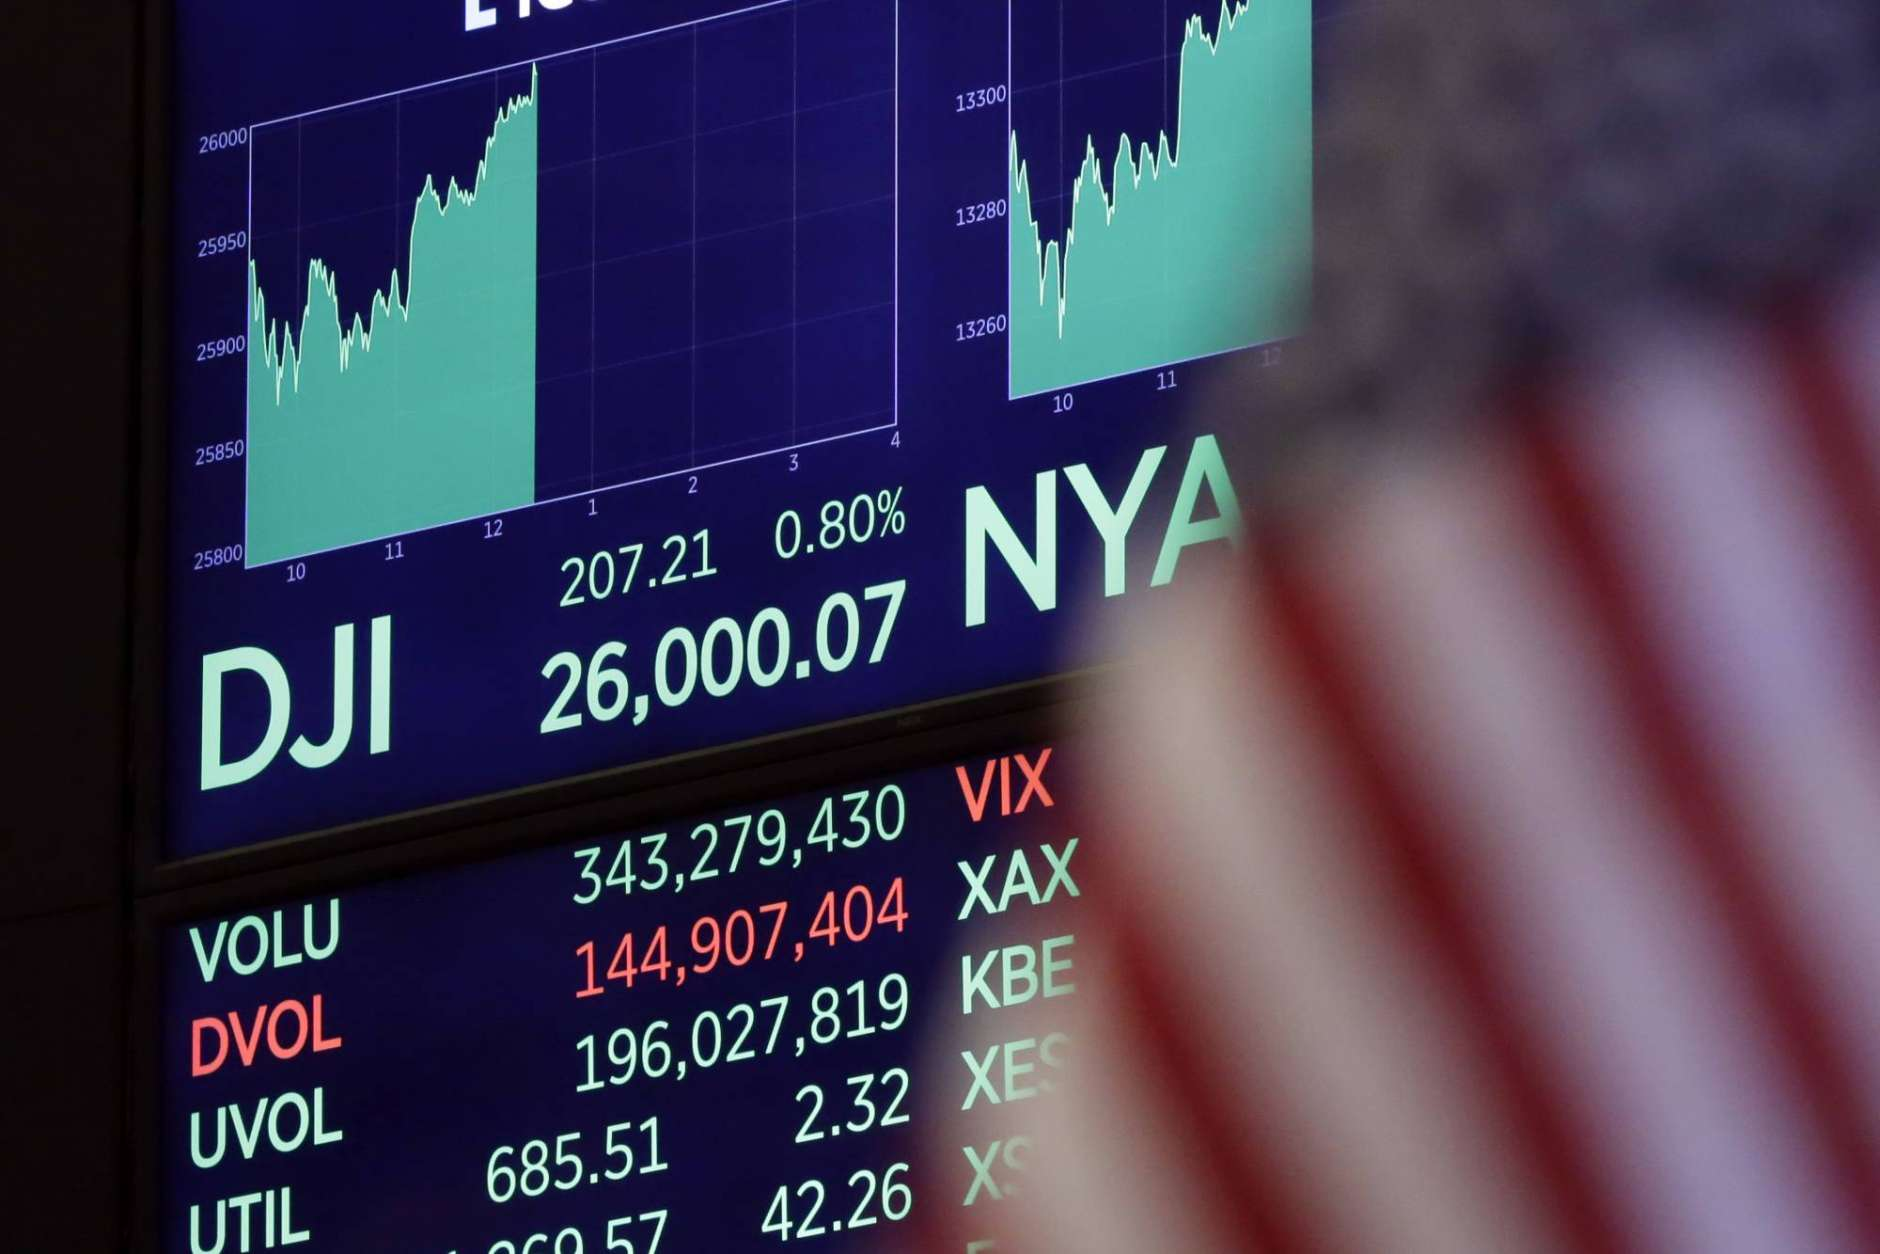 A board above the trading floor of the New York Stock Exchange shows the Dow Jones industrial average as it crosses the 26,000 level again, Wednesday, Jan. 17, 2018. U.S. stocks moved broadly higher in midday trading. (AP Photo/Richard Drew)